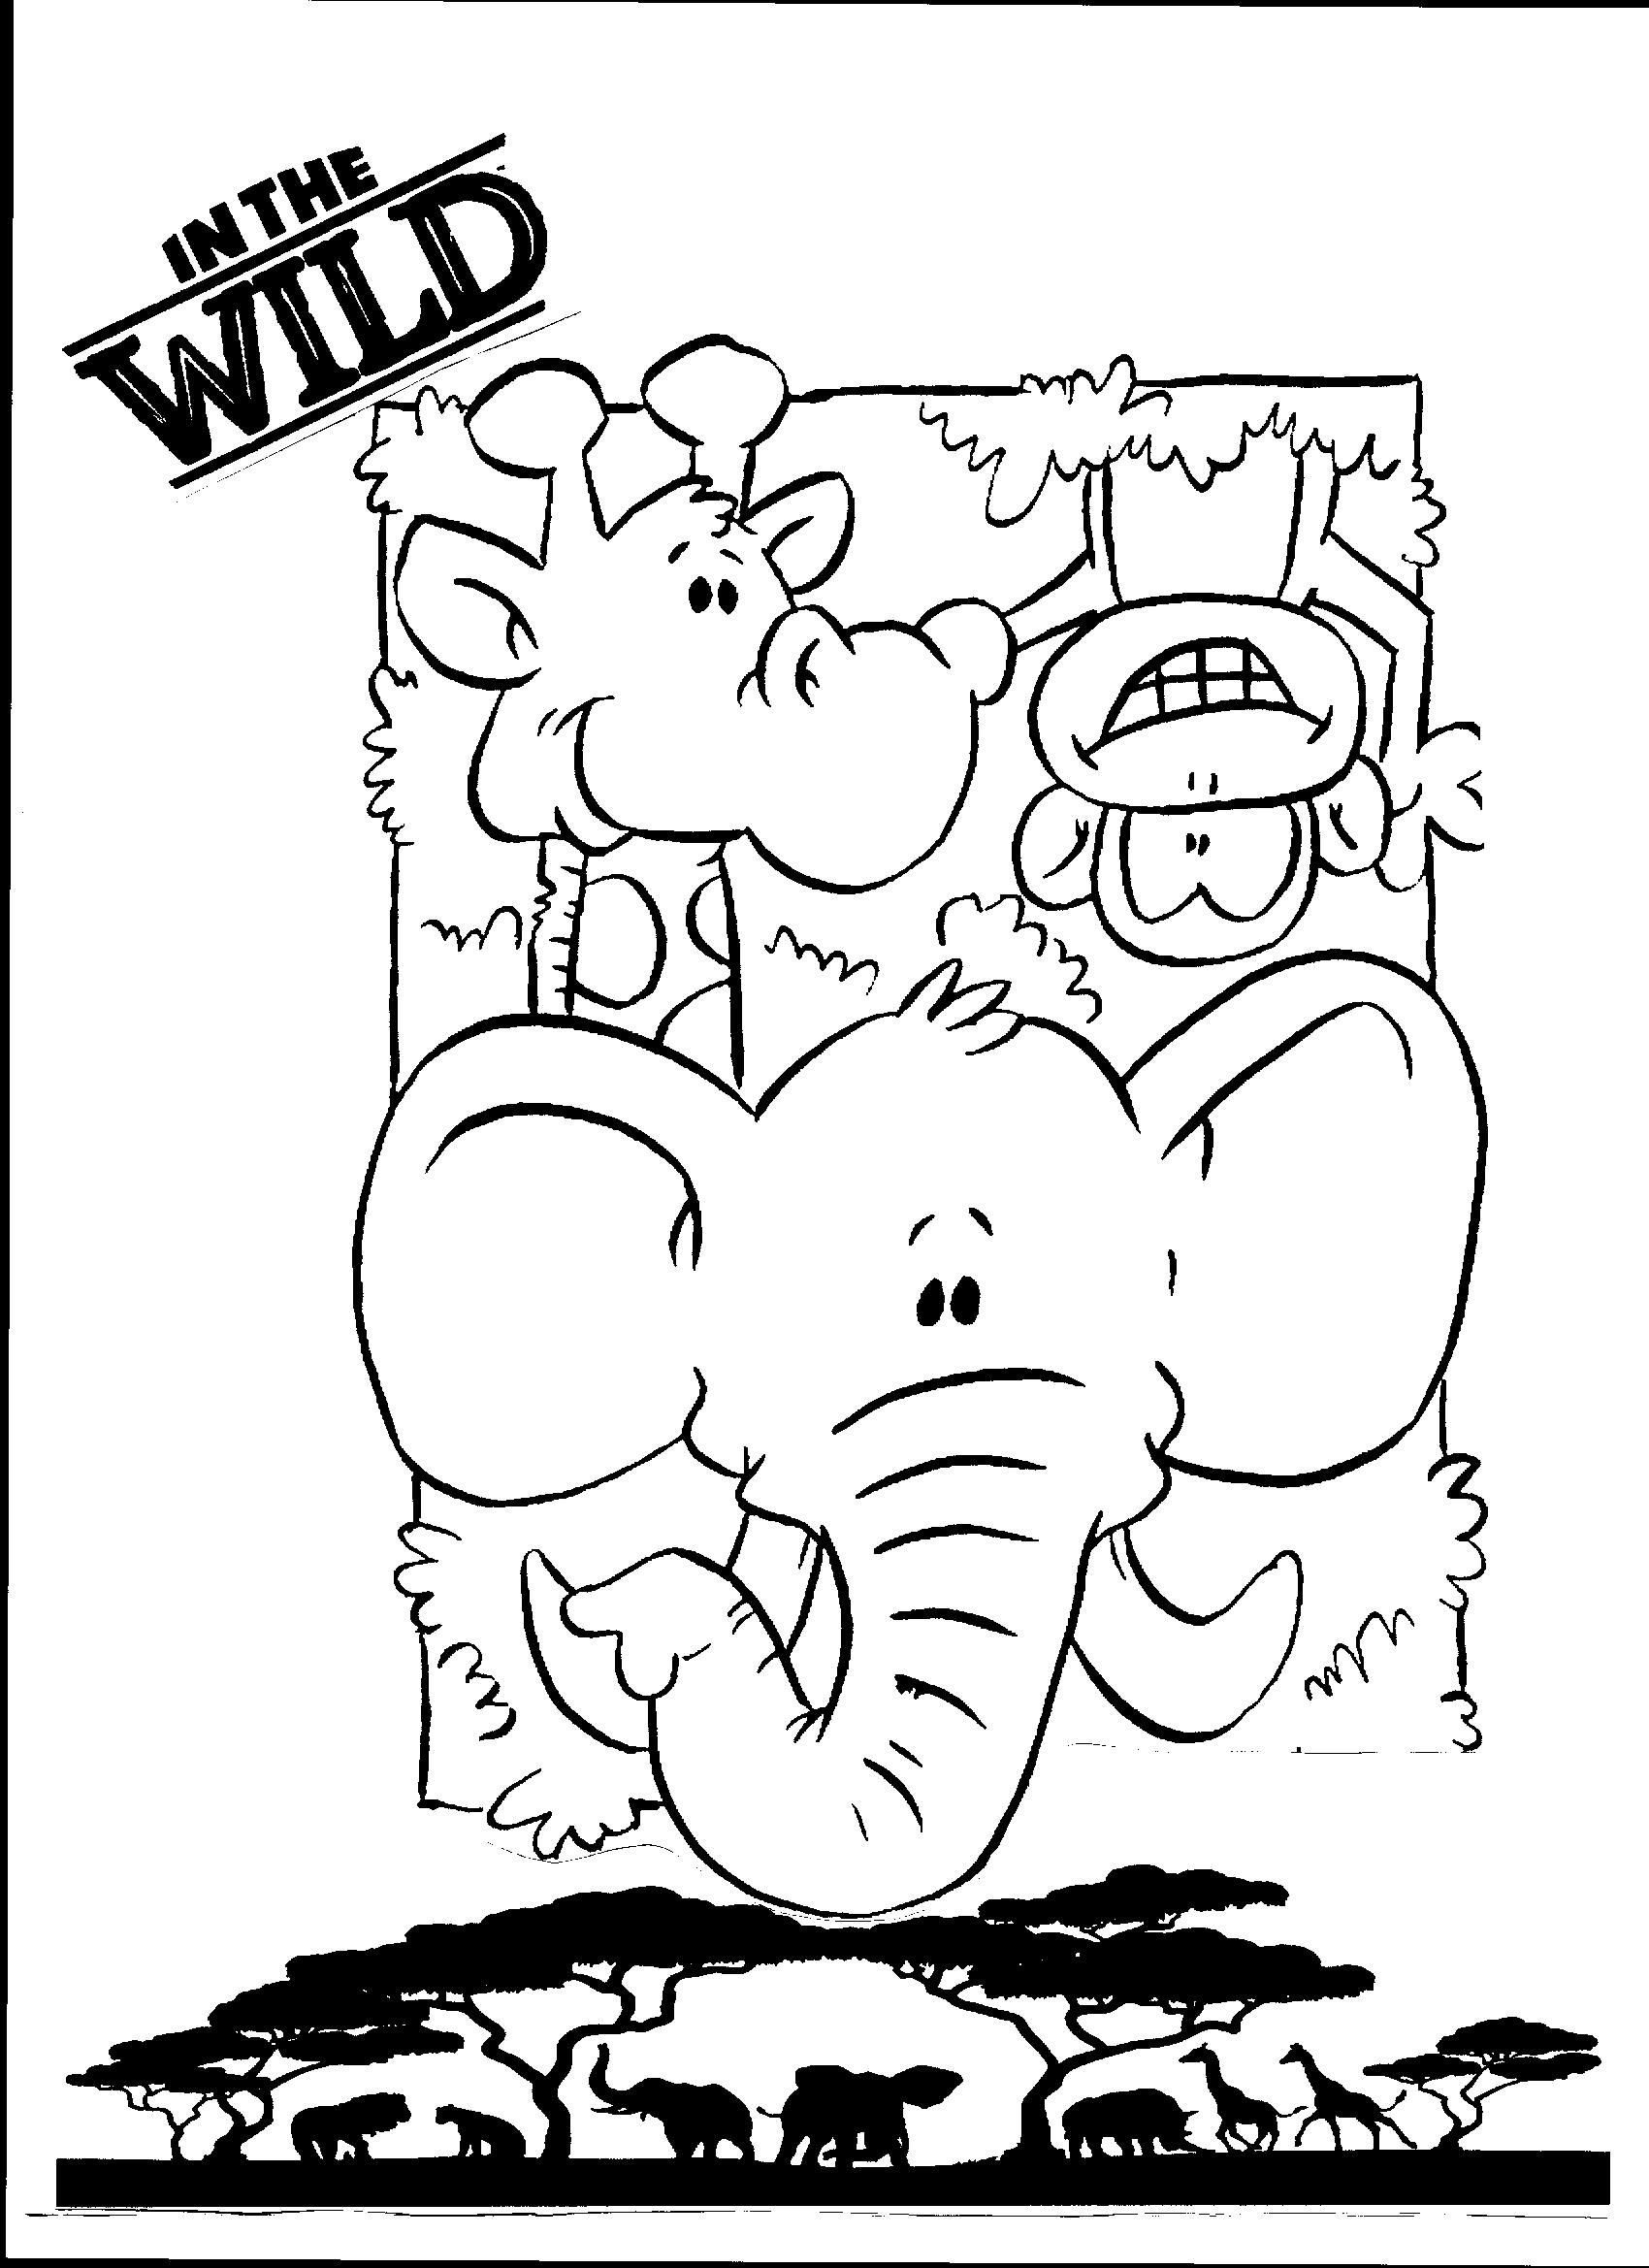 In The Wild Vbs Coloring Page Great To Use During Crafts Rotation